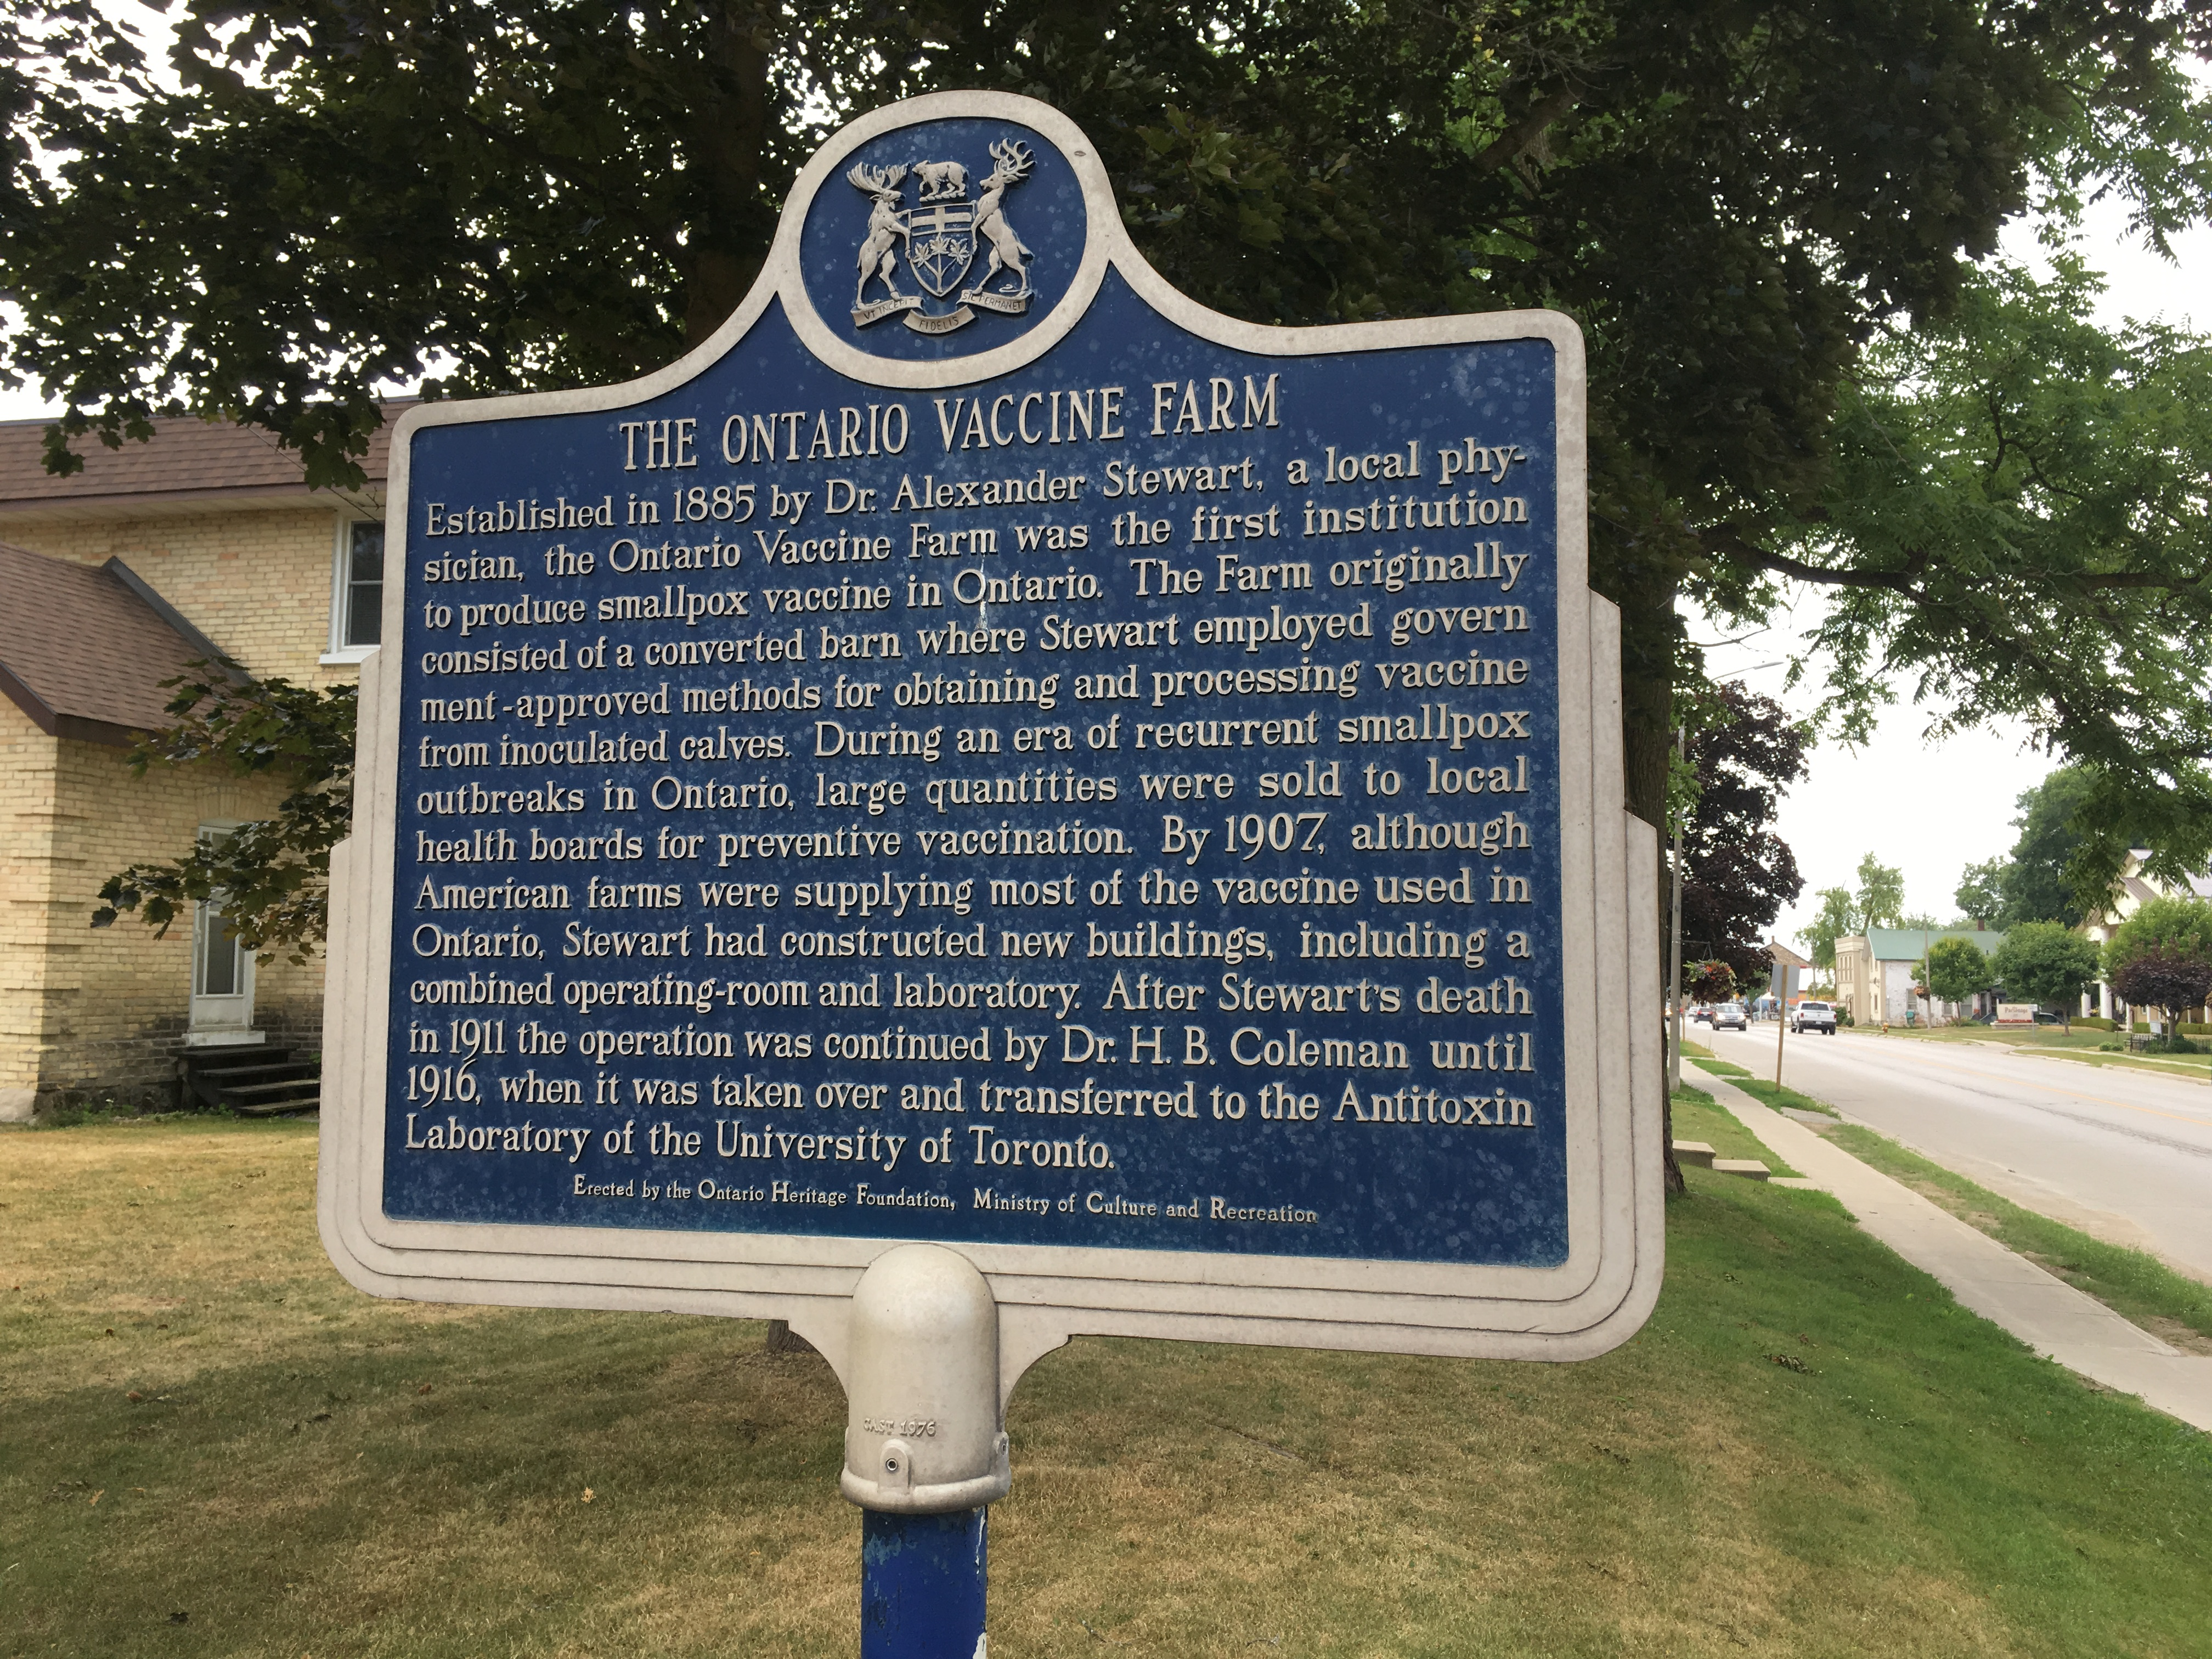 The Ontario Heritage Foundation installed a commemorative sign marking the site of the Ontario Vaccine Farm in Palmerston, Ontario; photo by the author. Further details at https://treasuresofminto.ca/map/historic-sites/provincial-historical-plaque-2